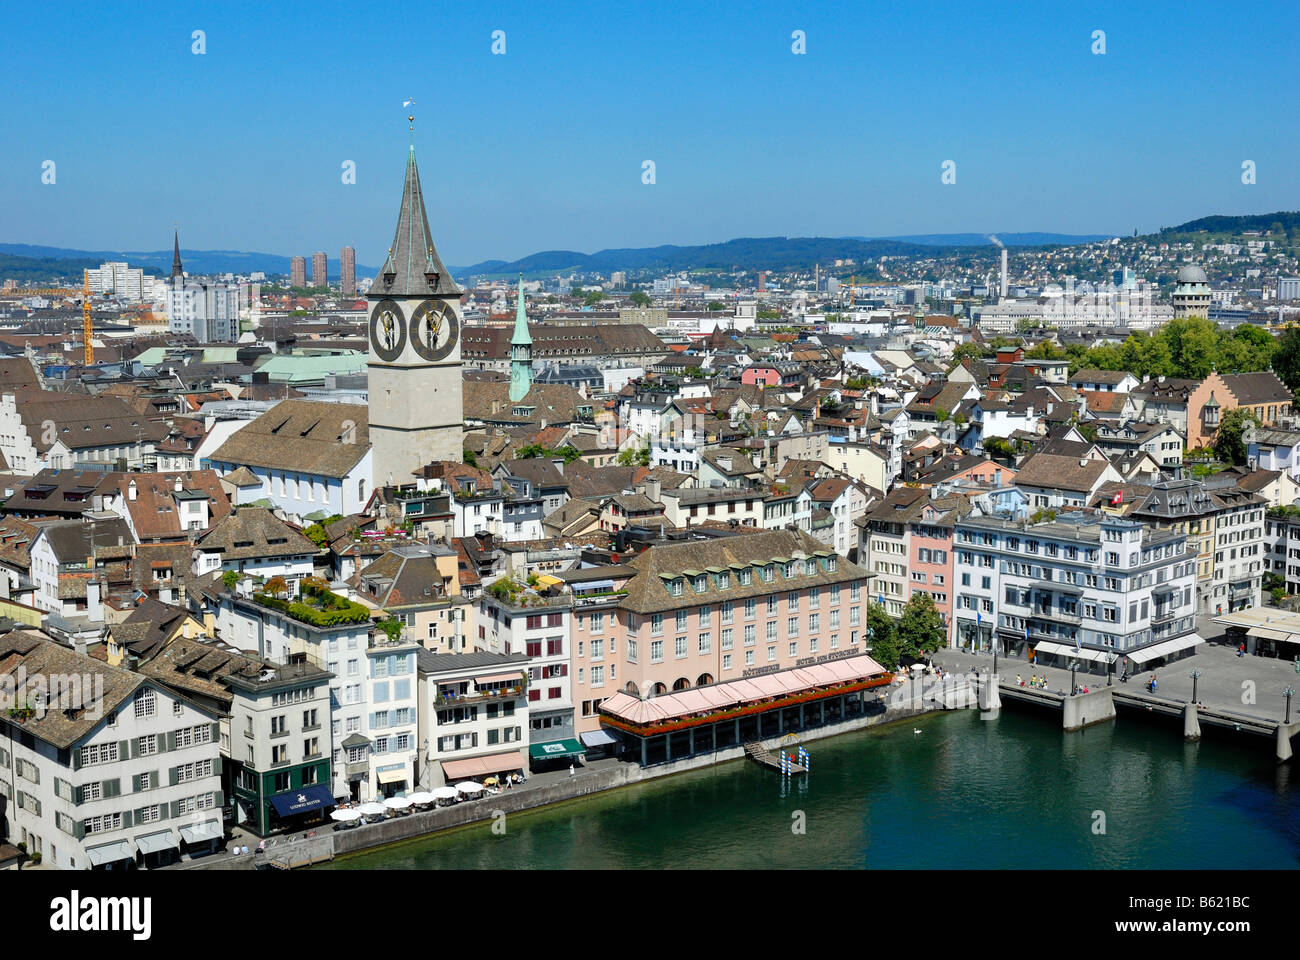 View of the historic centre and Limmat River, Zurich, Canton of Zurich, Switzerland, Europe - Stock Image